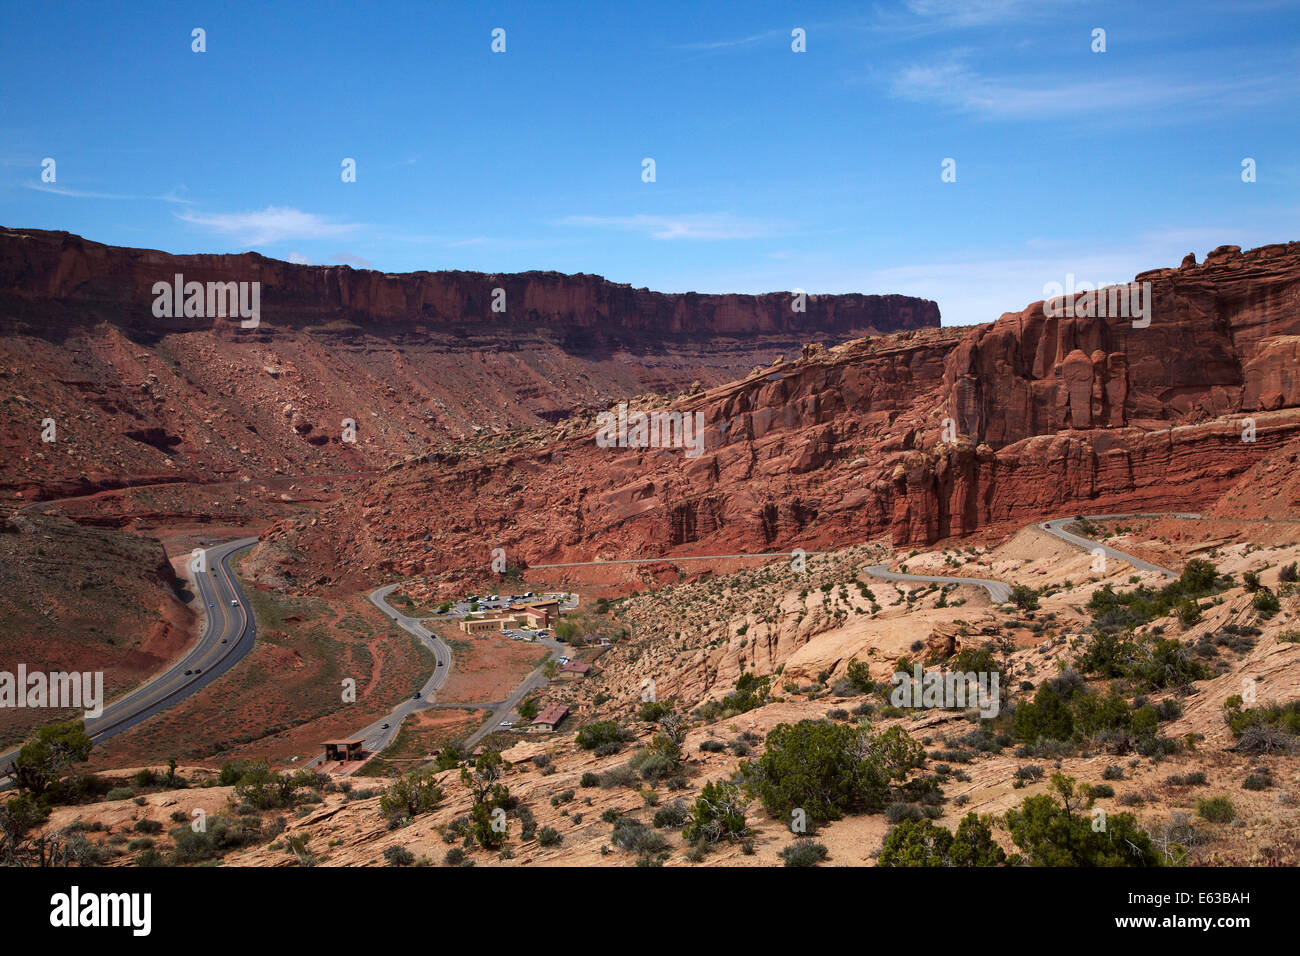 US route 191 and zigzag road entering Arches National Park, near Moab, Utah, USA - Stock Image